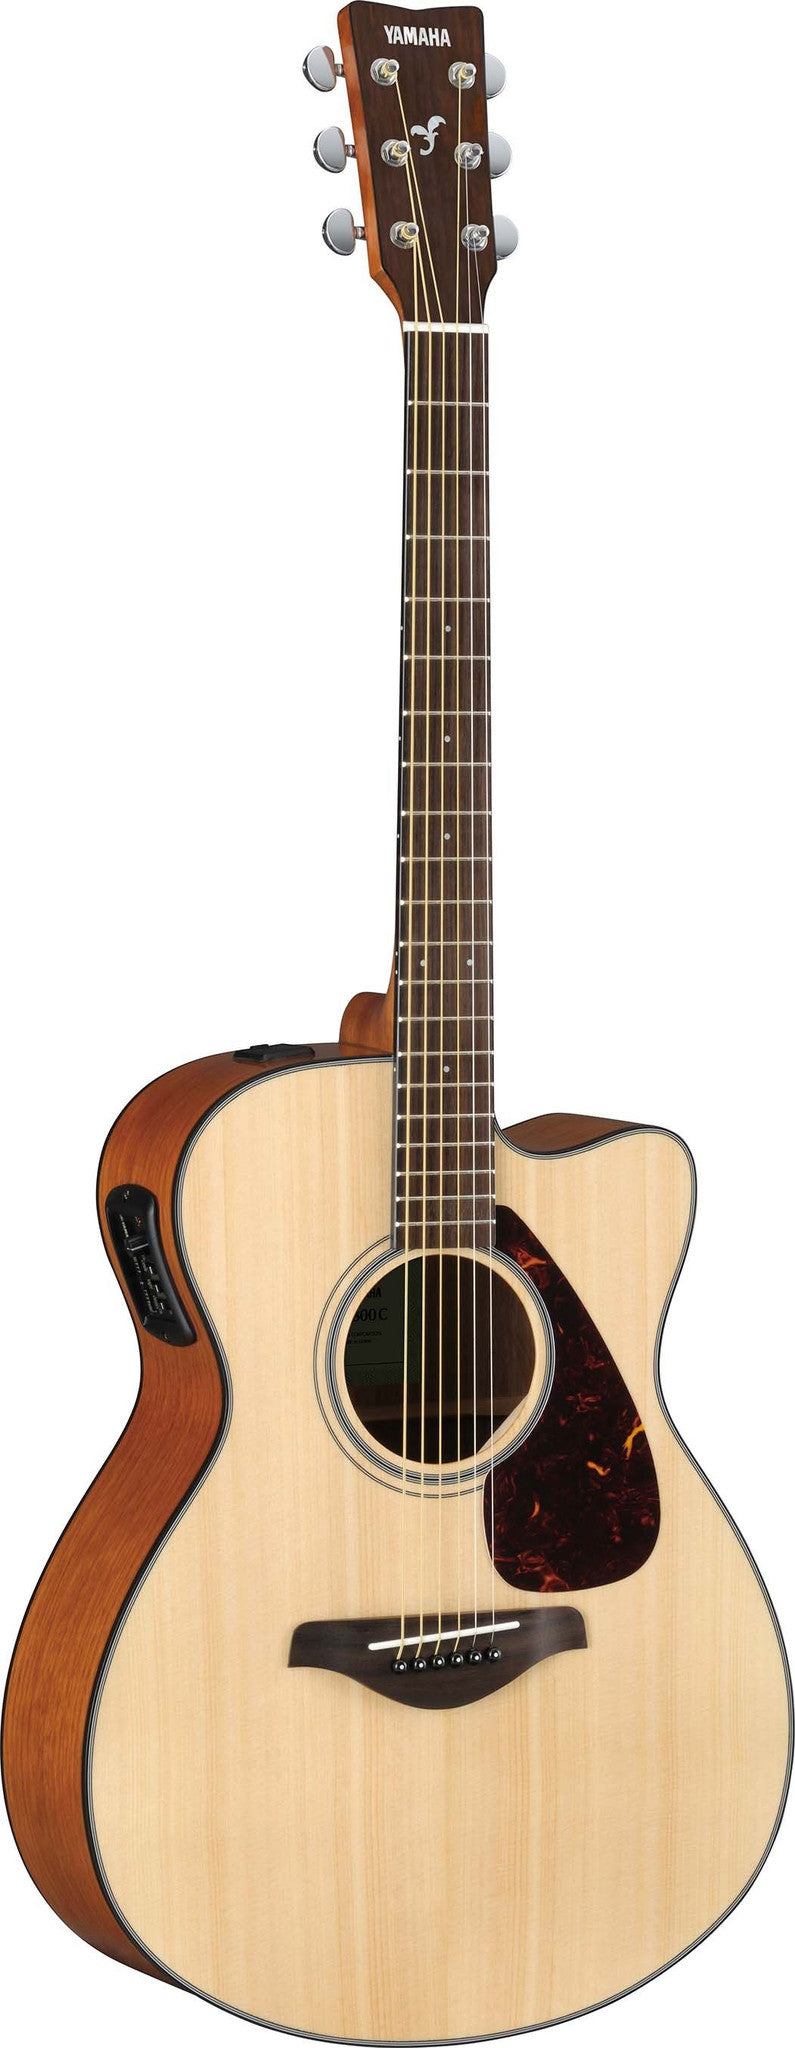 Yamaha FSX800C Small Body Acoustic Electric Guitar